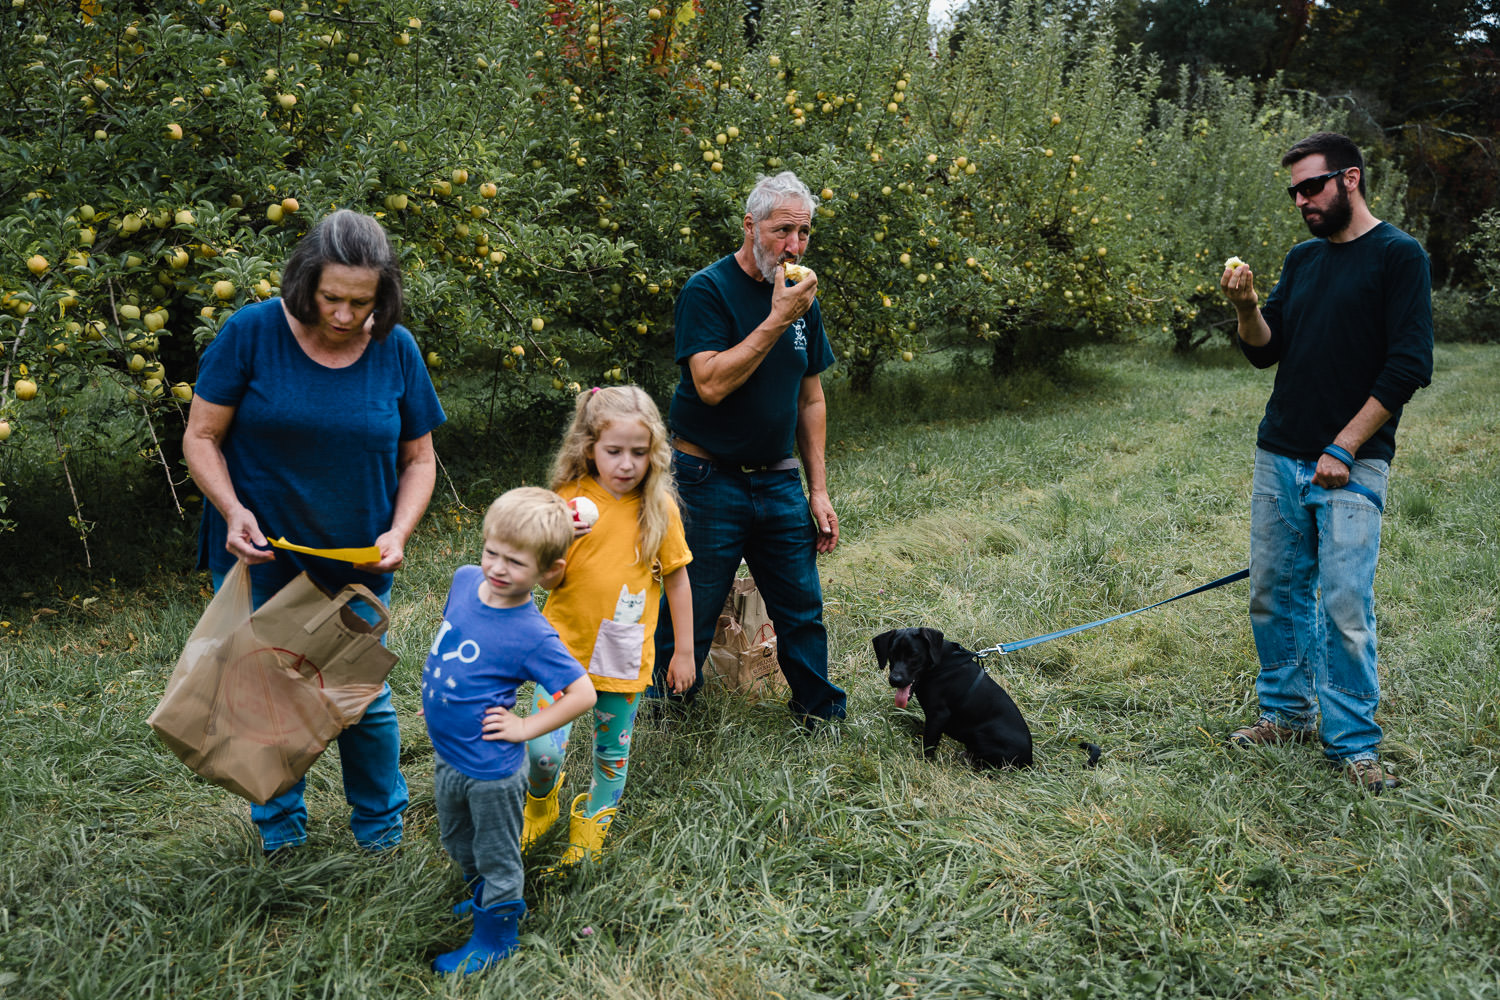 A family picks apples.